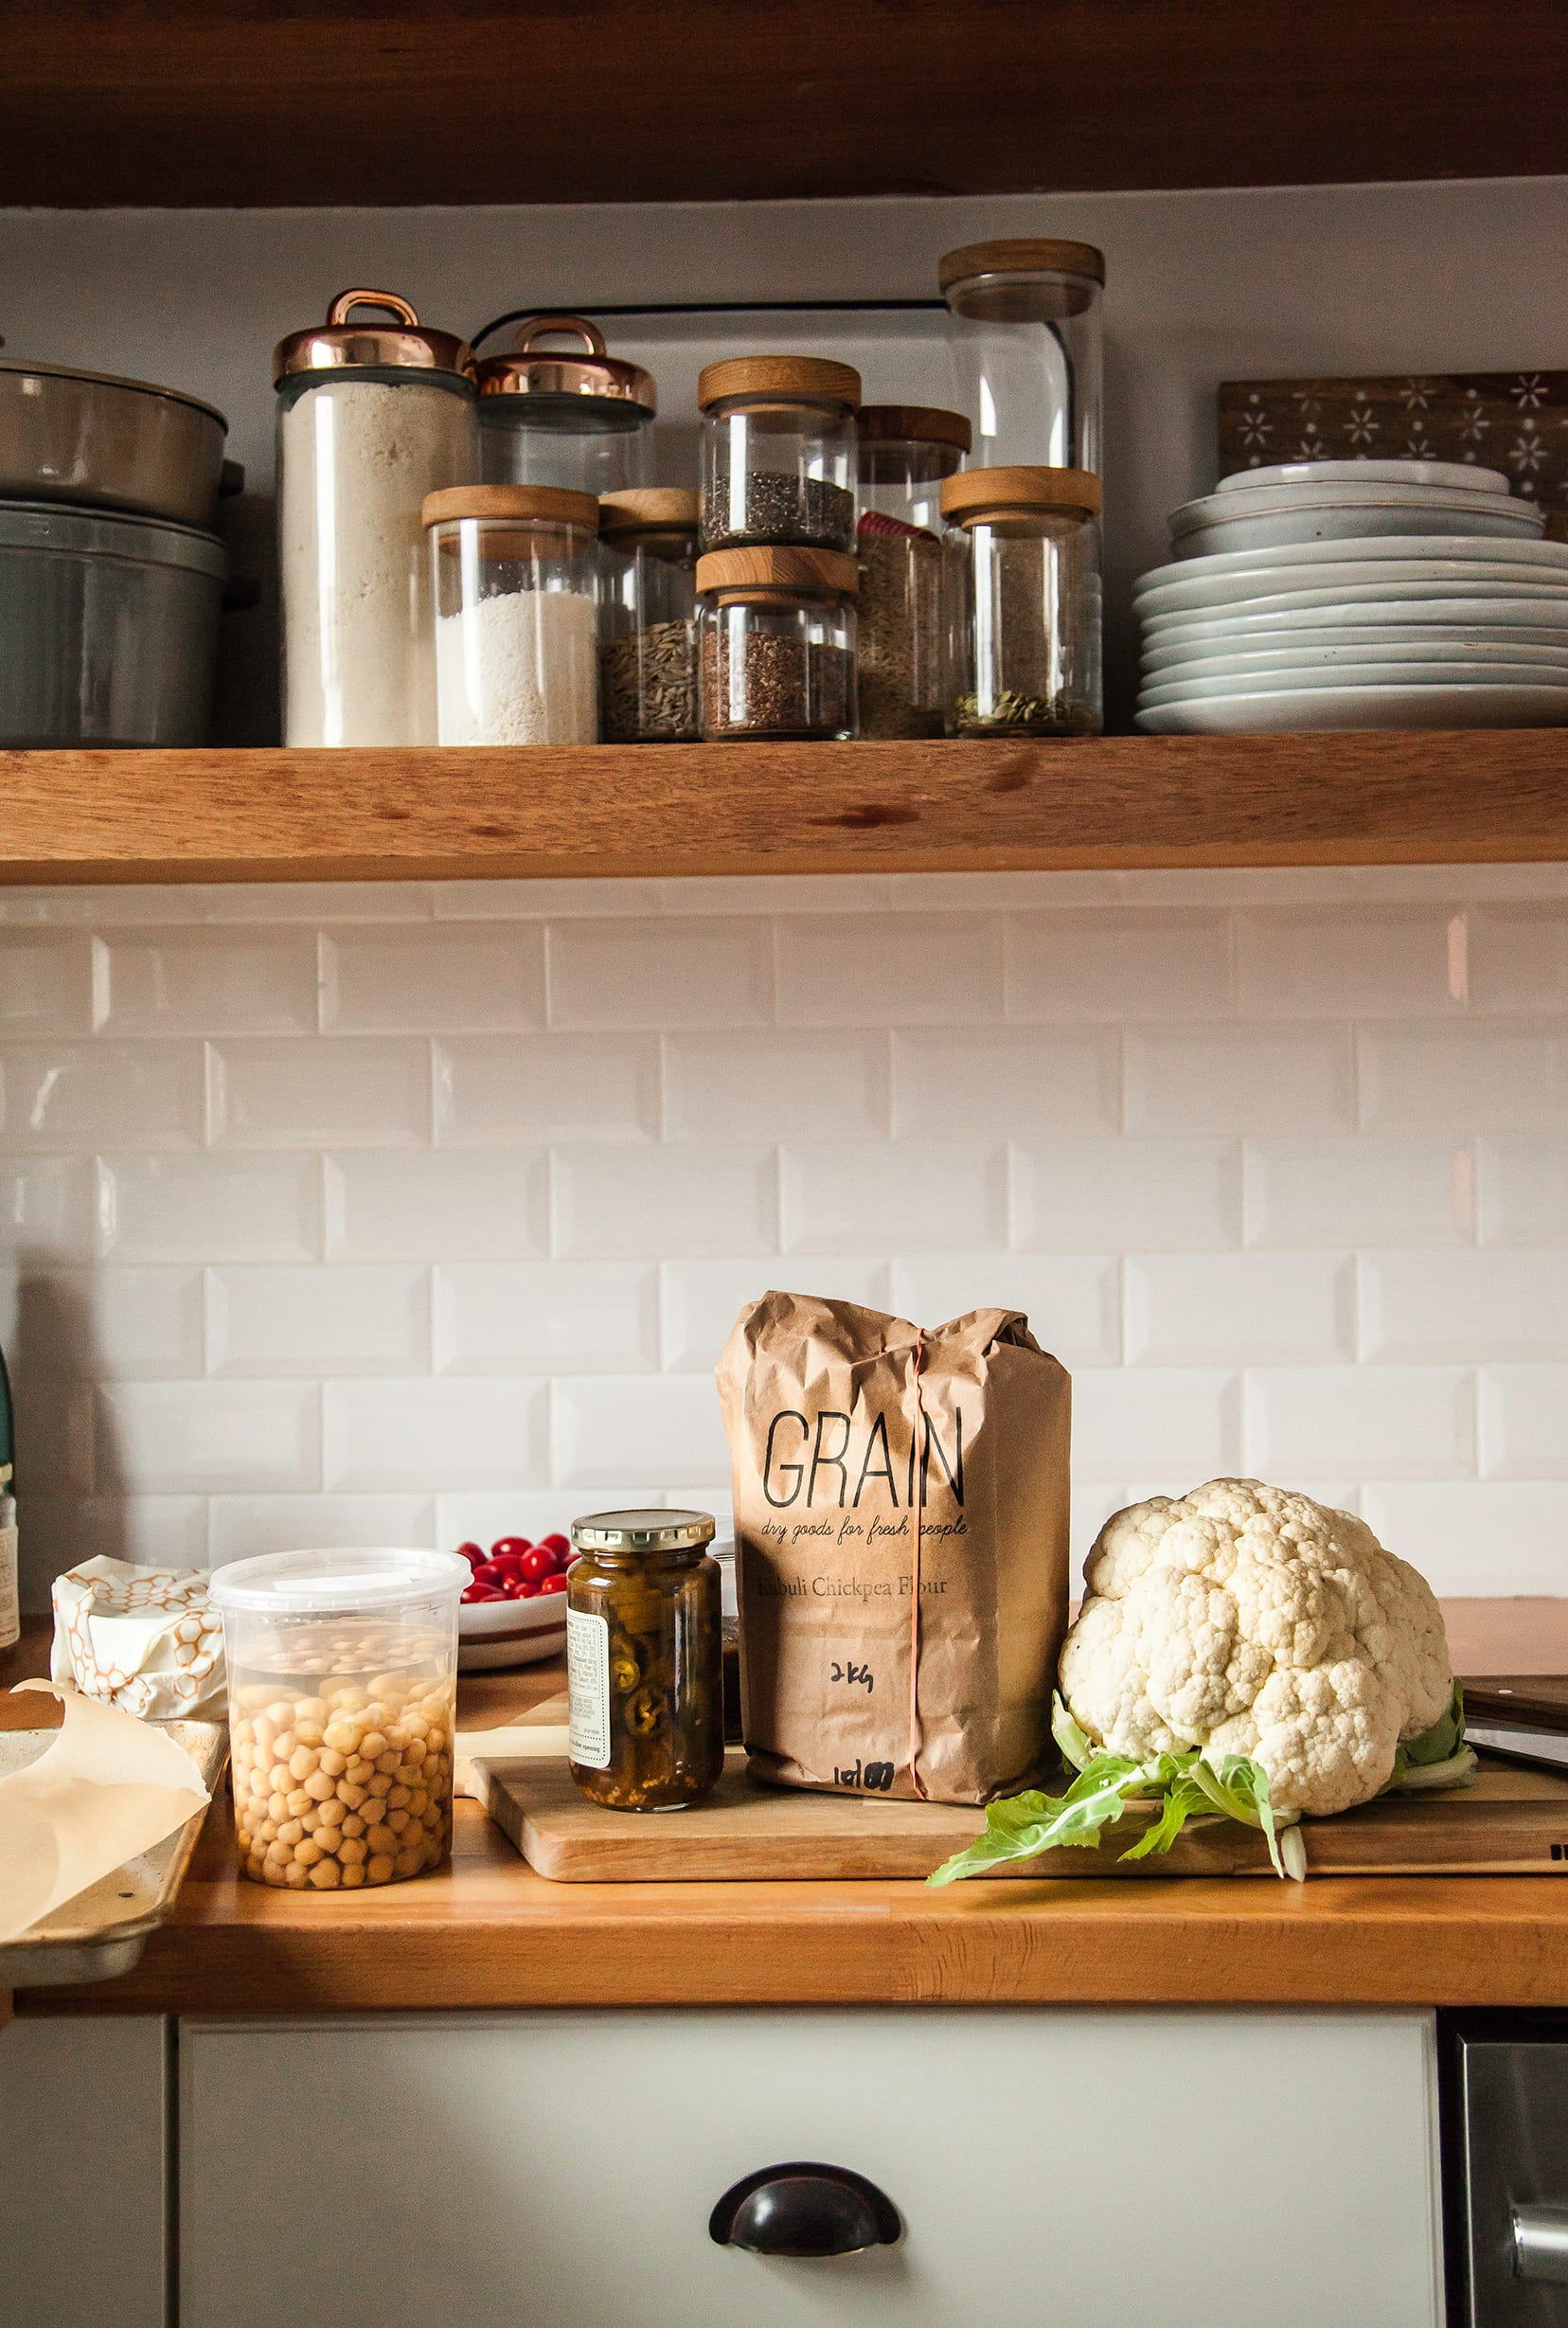 Image shows ingredients for a salad on a butcher block countertop in a white tiled kitchen.